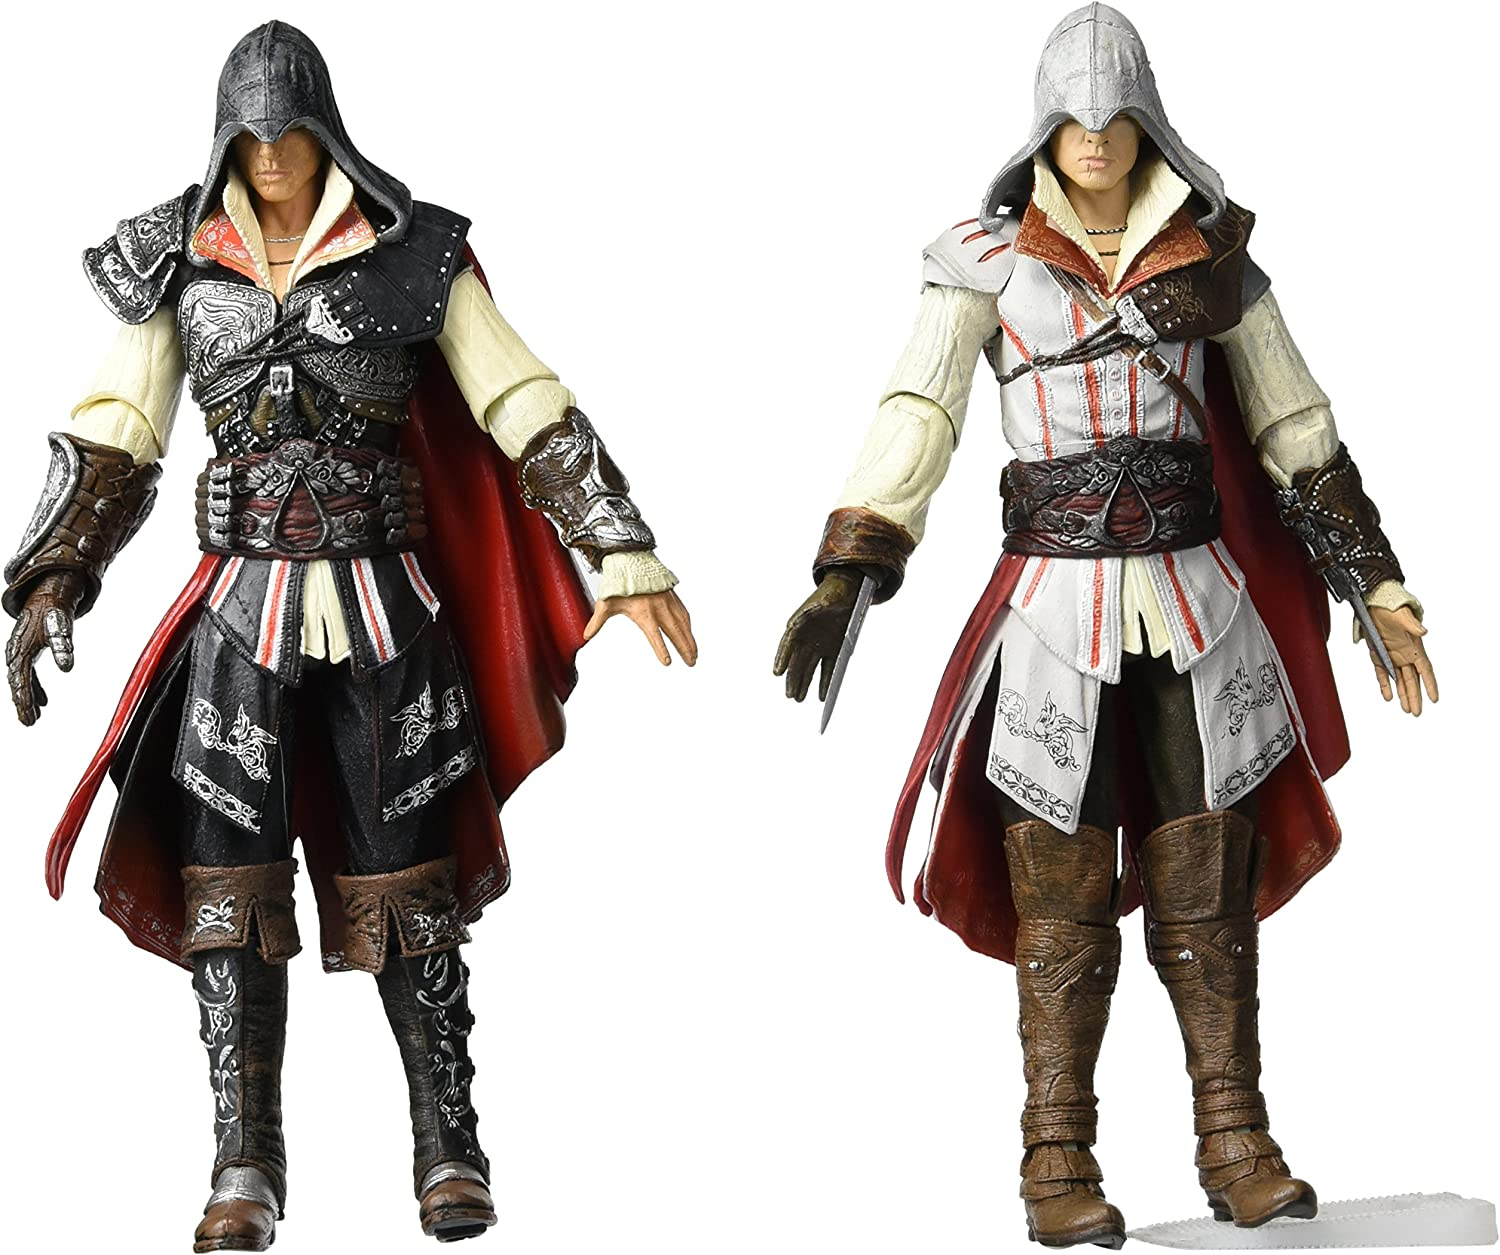 Amazon Com Neca Assassins Creed 2 Series 1 Set Of Both Action Figures Ezio Black Cloak White Cloak Toys Games